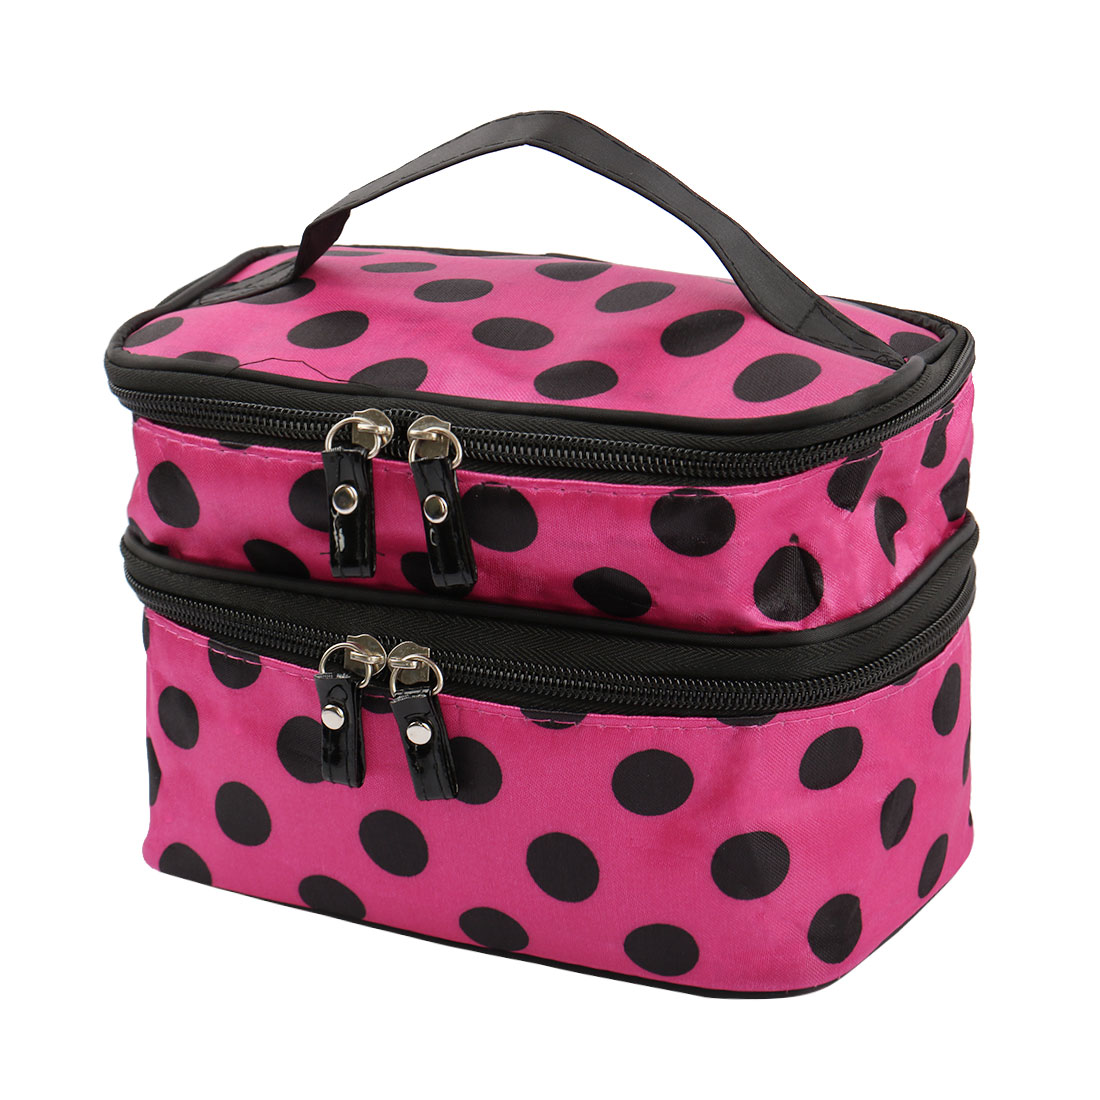 6c99f39b282b Travel Cosmetic Makeup Bag Organizer Double Layer Dot Pattern Toiletry Bag  Case Pouch With Mirror For Woman